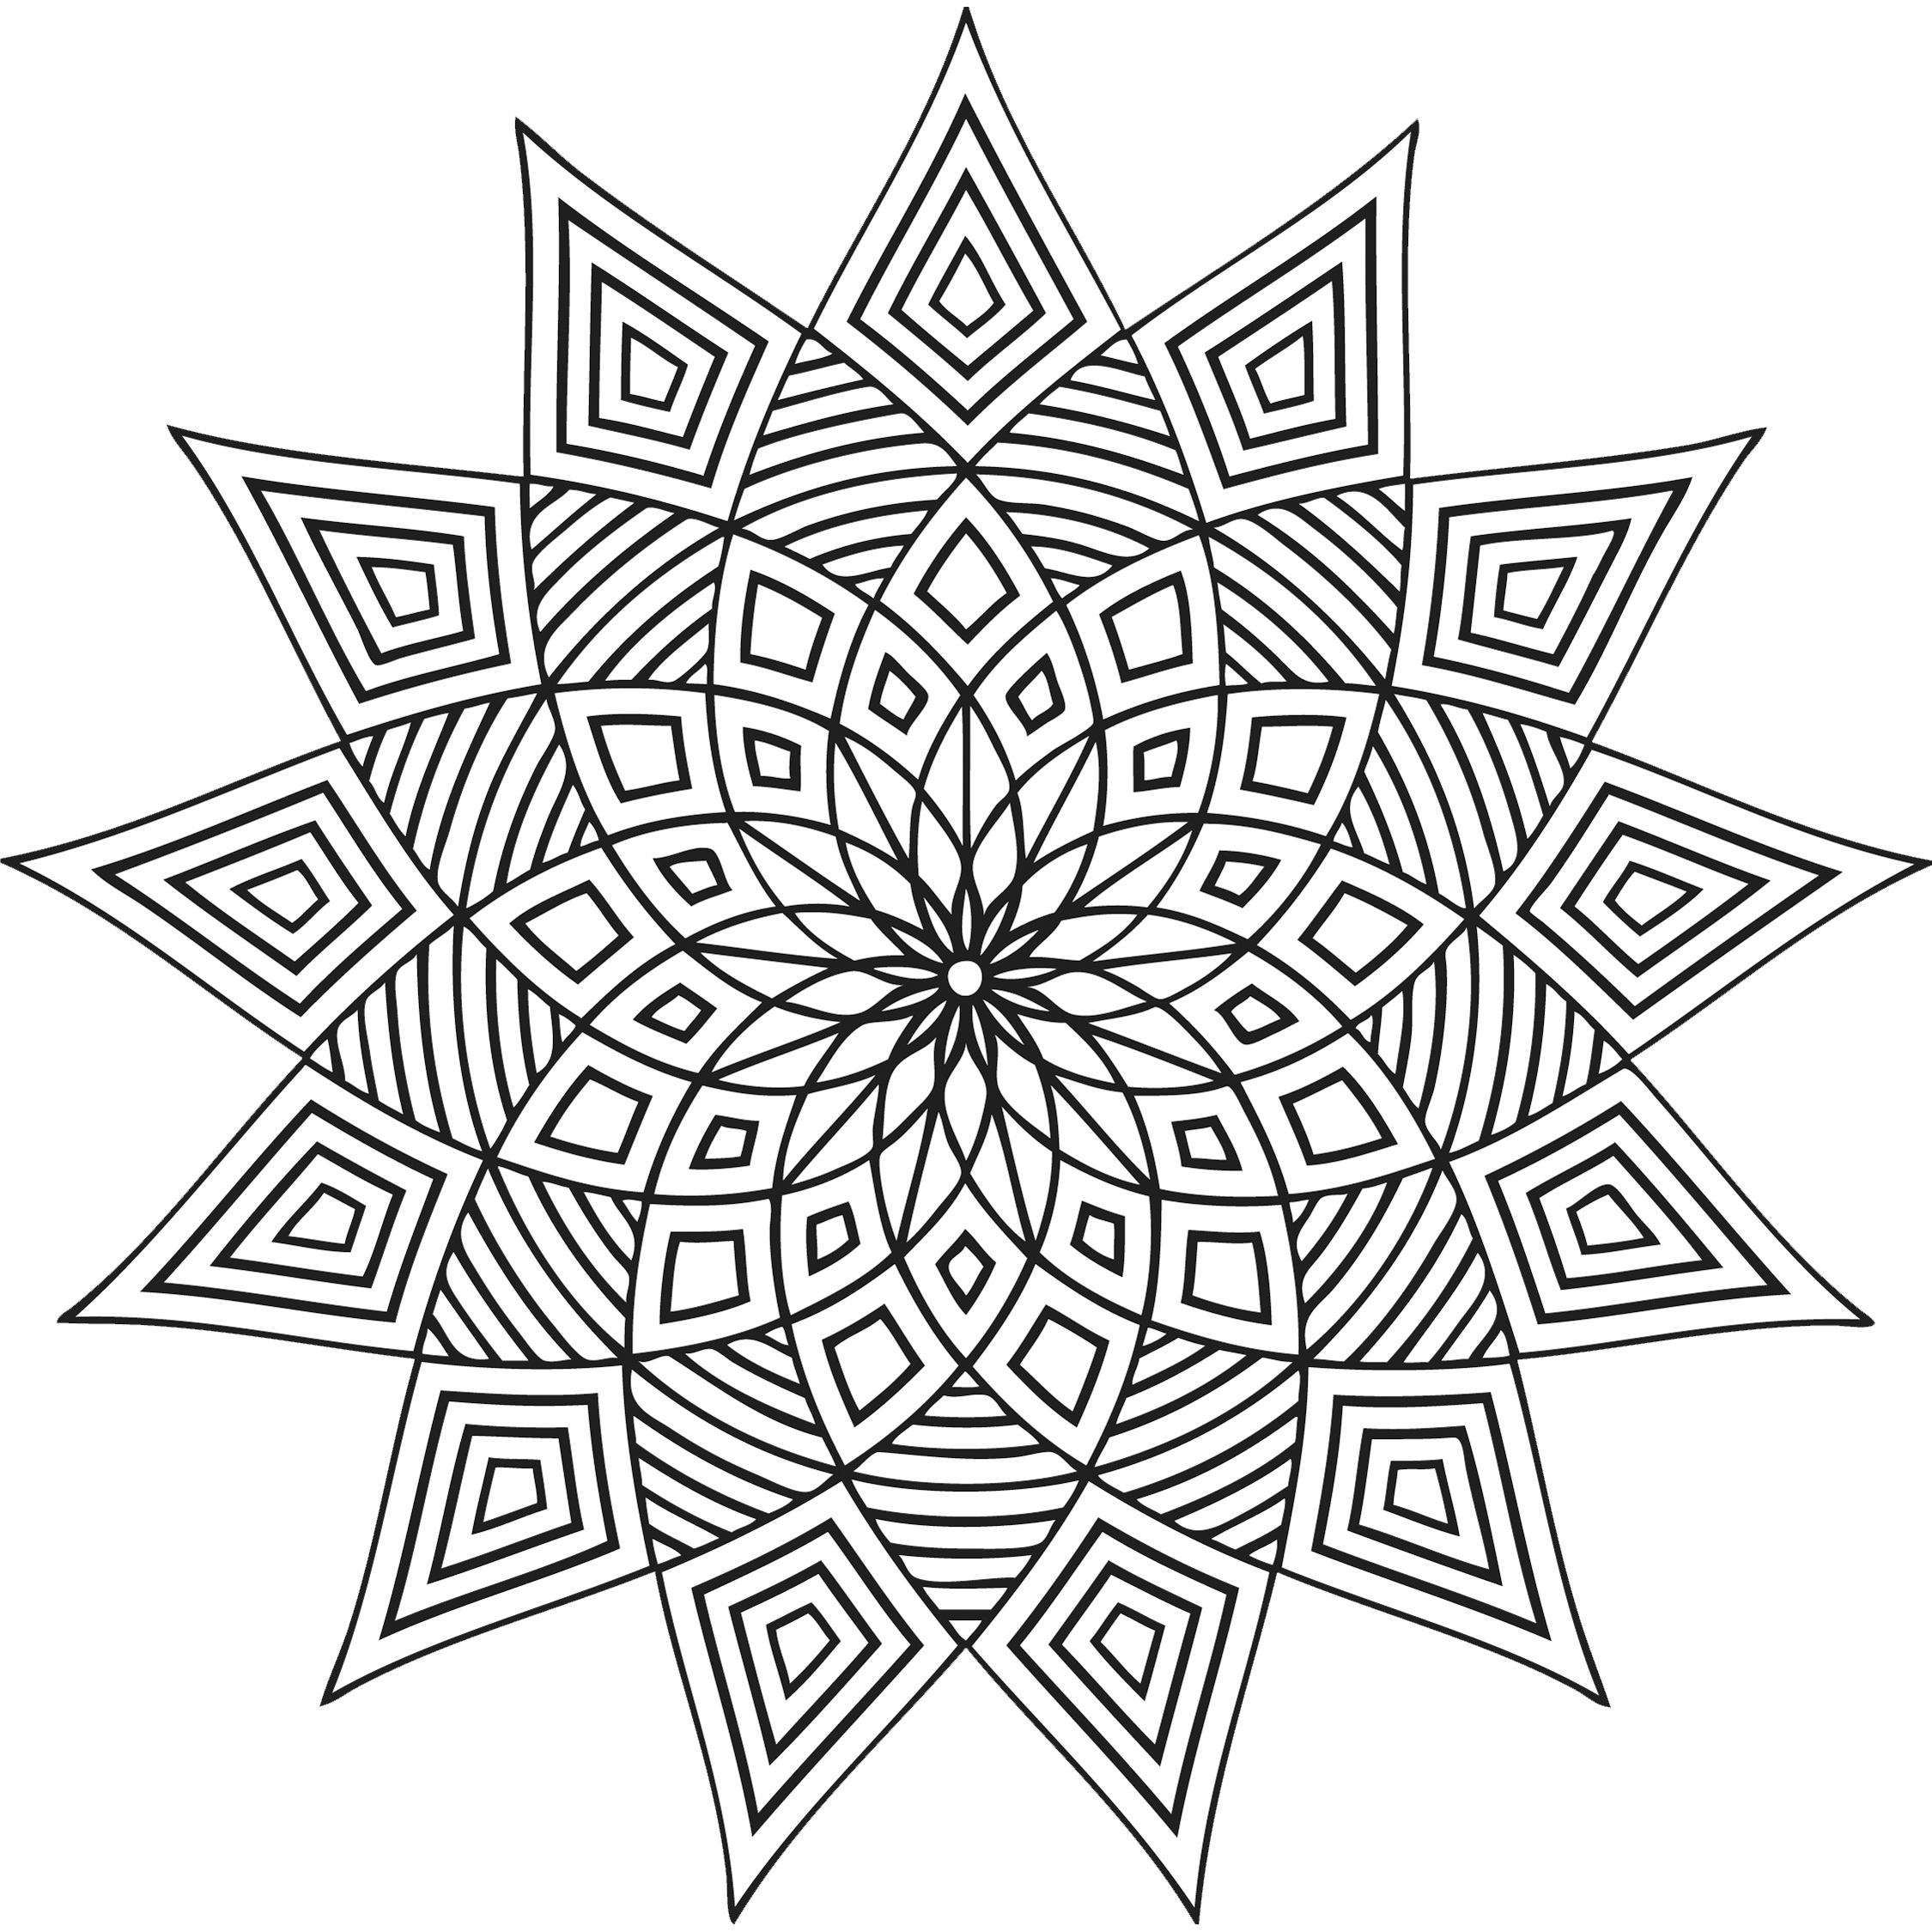 pattern coloring pages for adults adult coloring pages patterns coloring home pattern pages coloring adults for